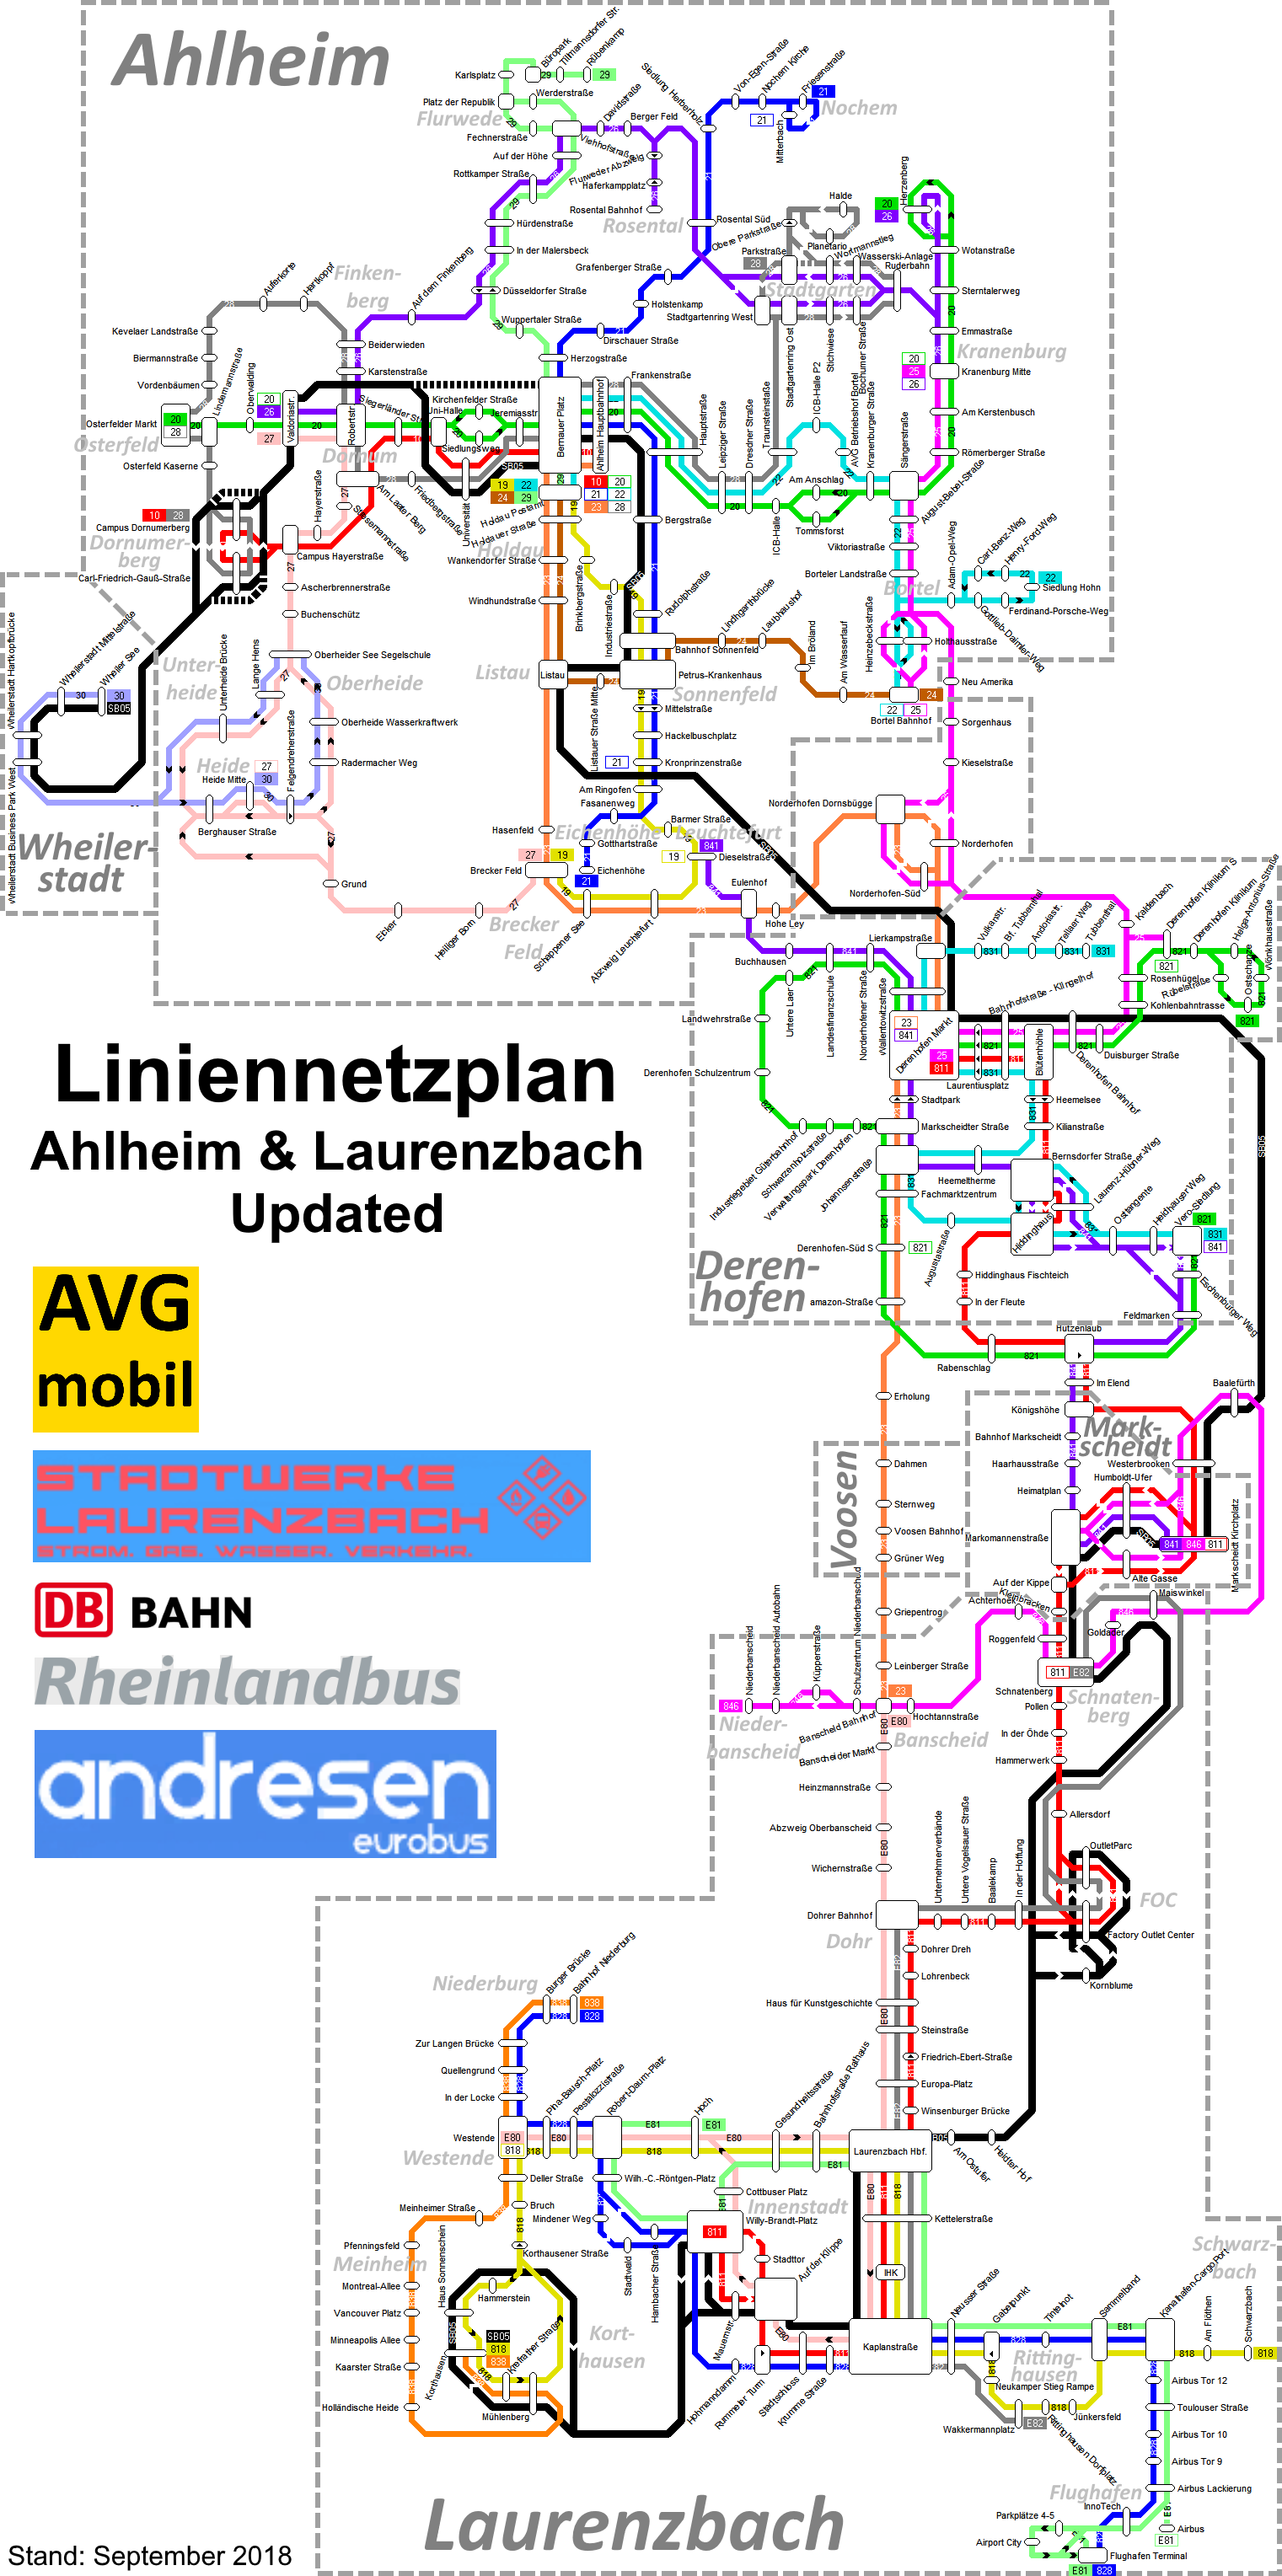 liniennetzplanqrdoy.png